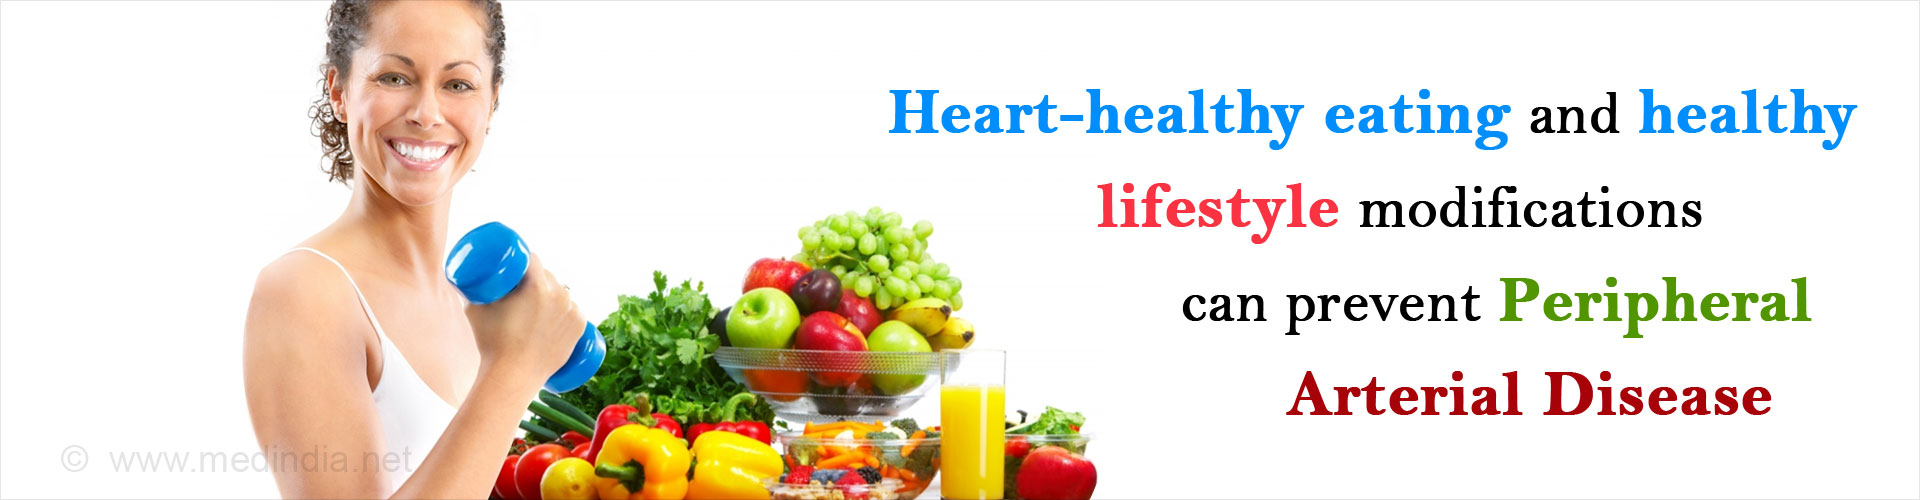 Heart-healthy eating and healthy lifestyle modifications can prevent peripheral arterial disease